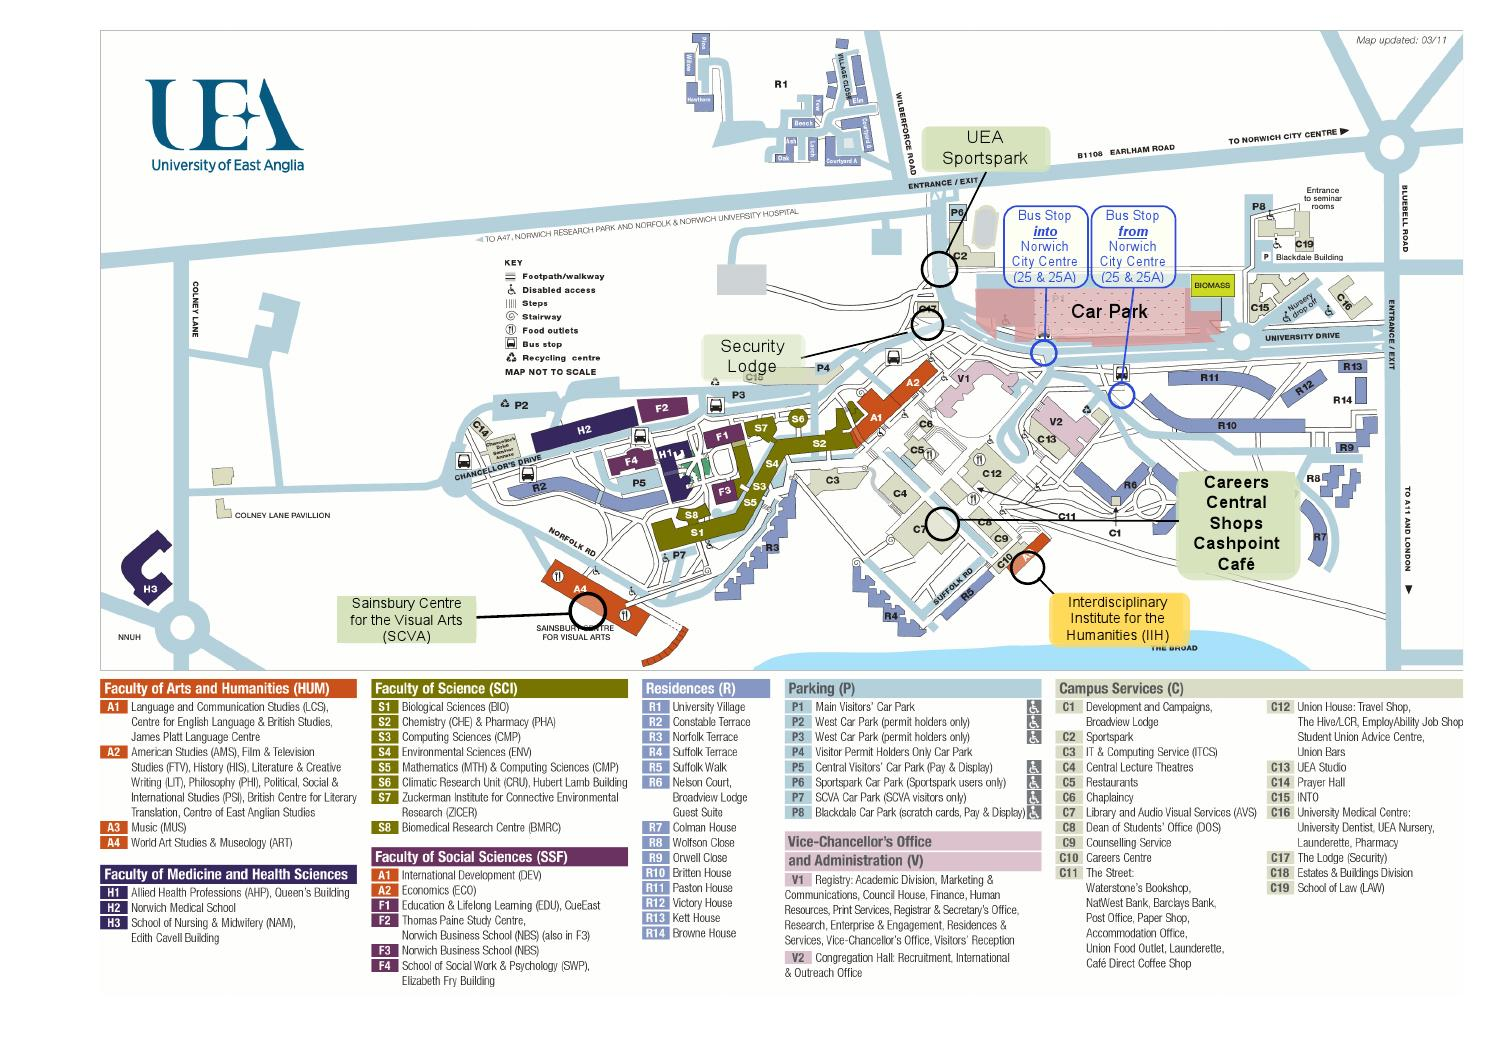 uea map of campus Uea Campus Map By Siobhan Hoffmann Issuu uea map of campus